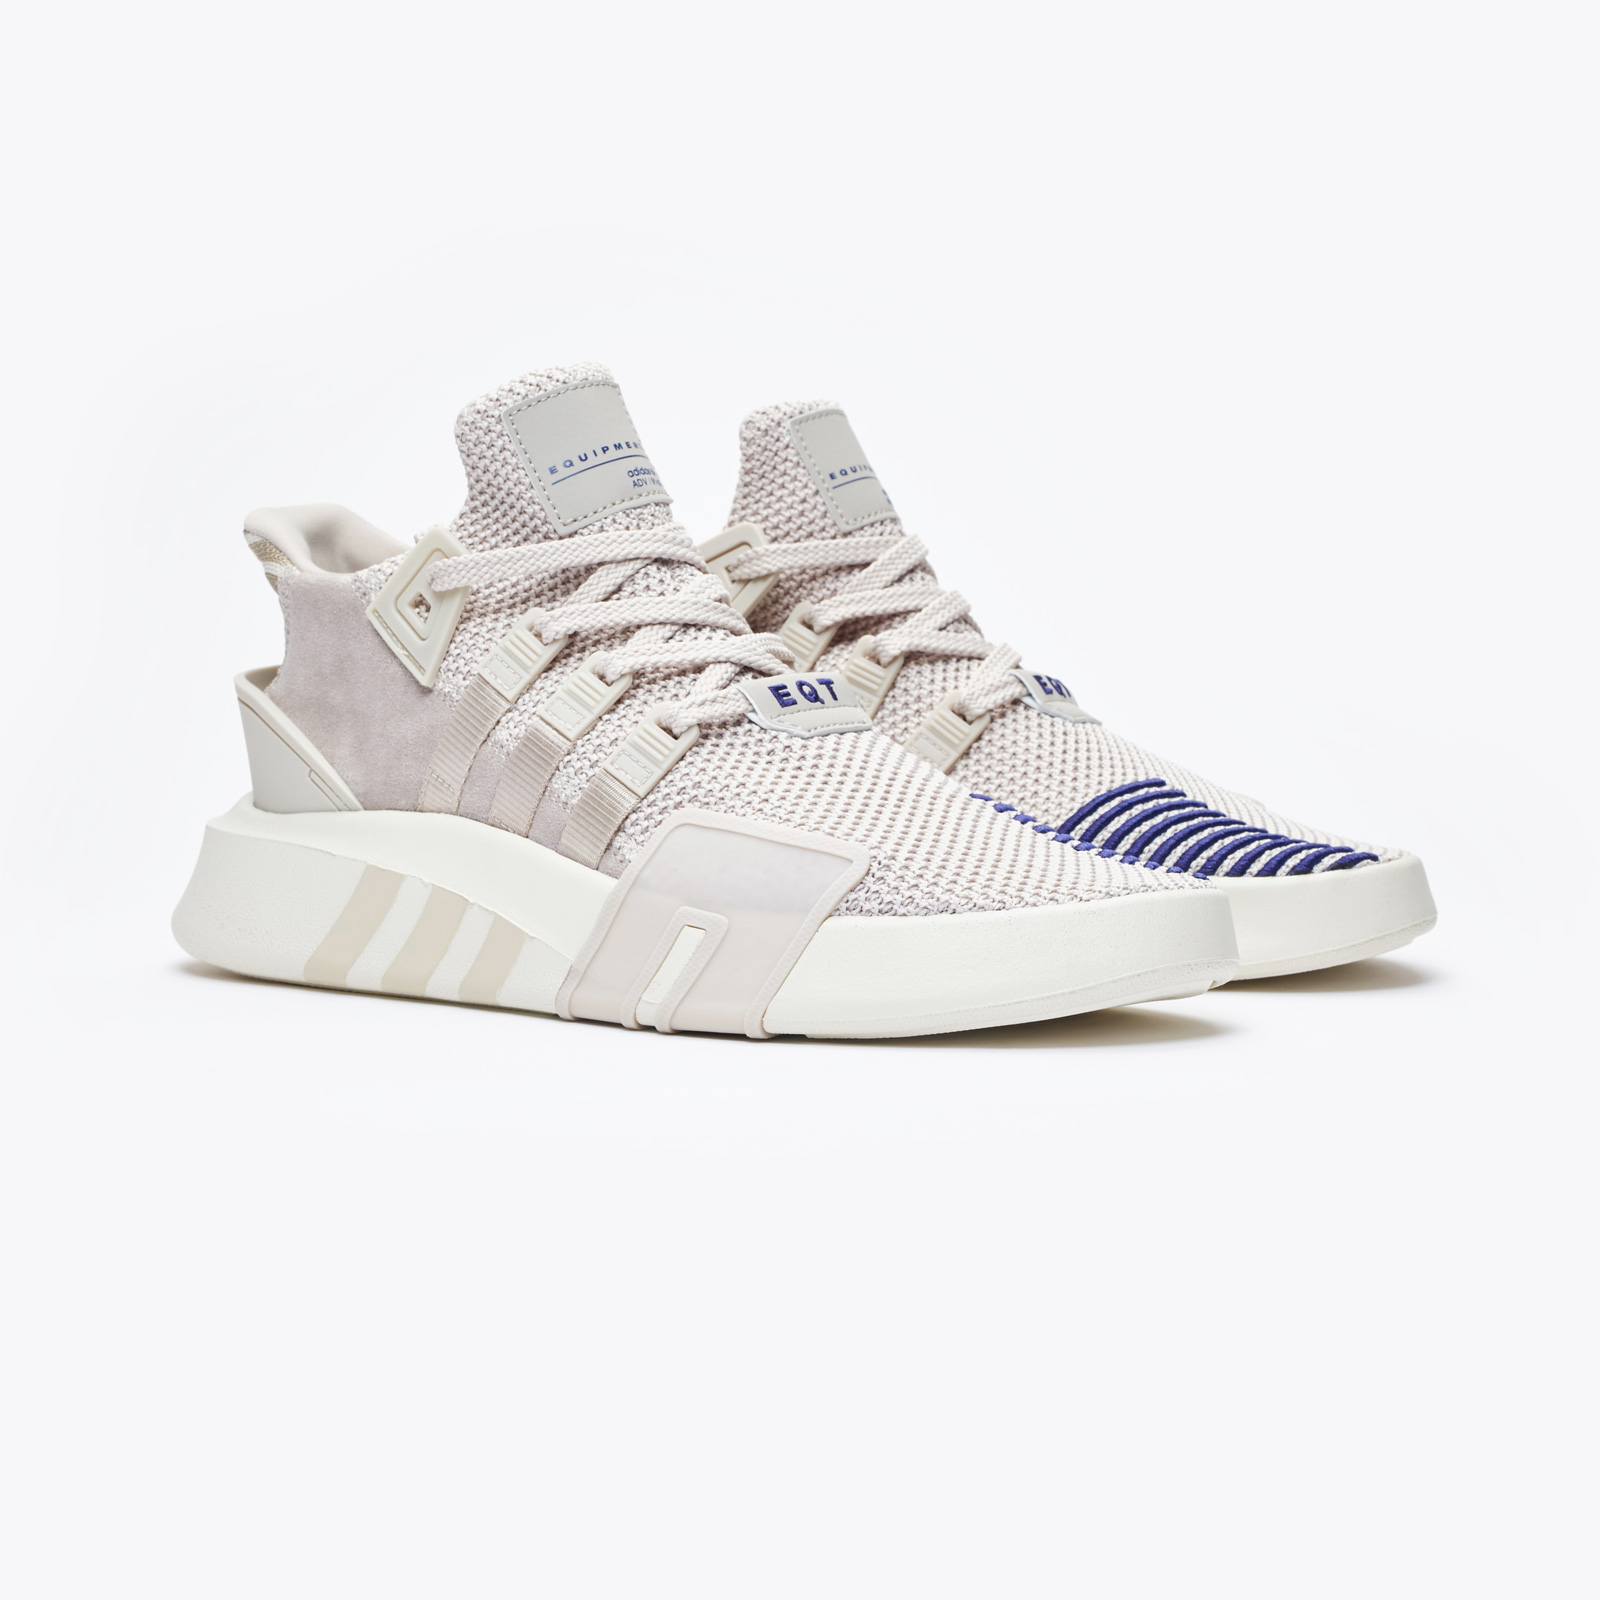 new product b3891 29109 adidas Originals EQT Basket ADV ...